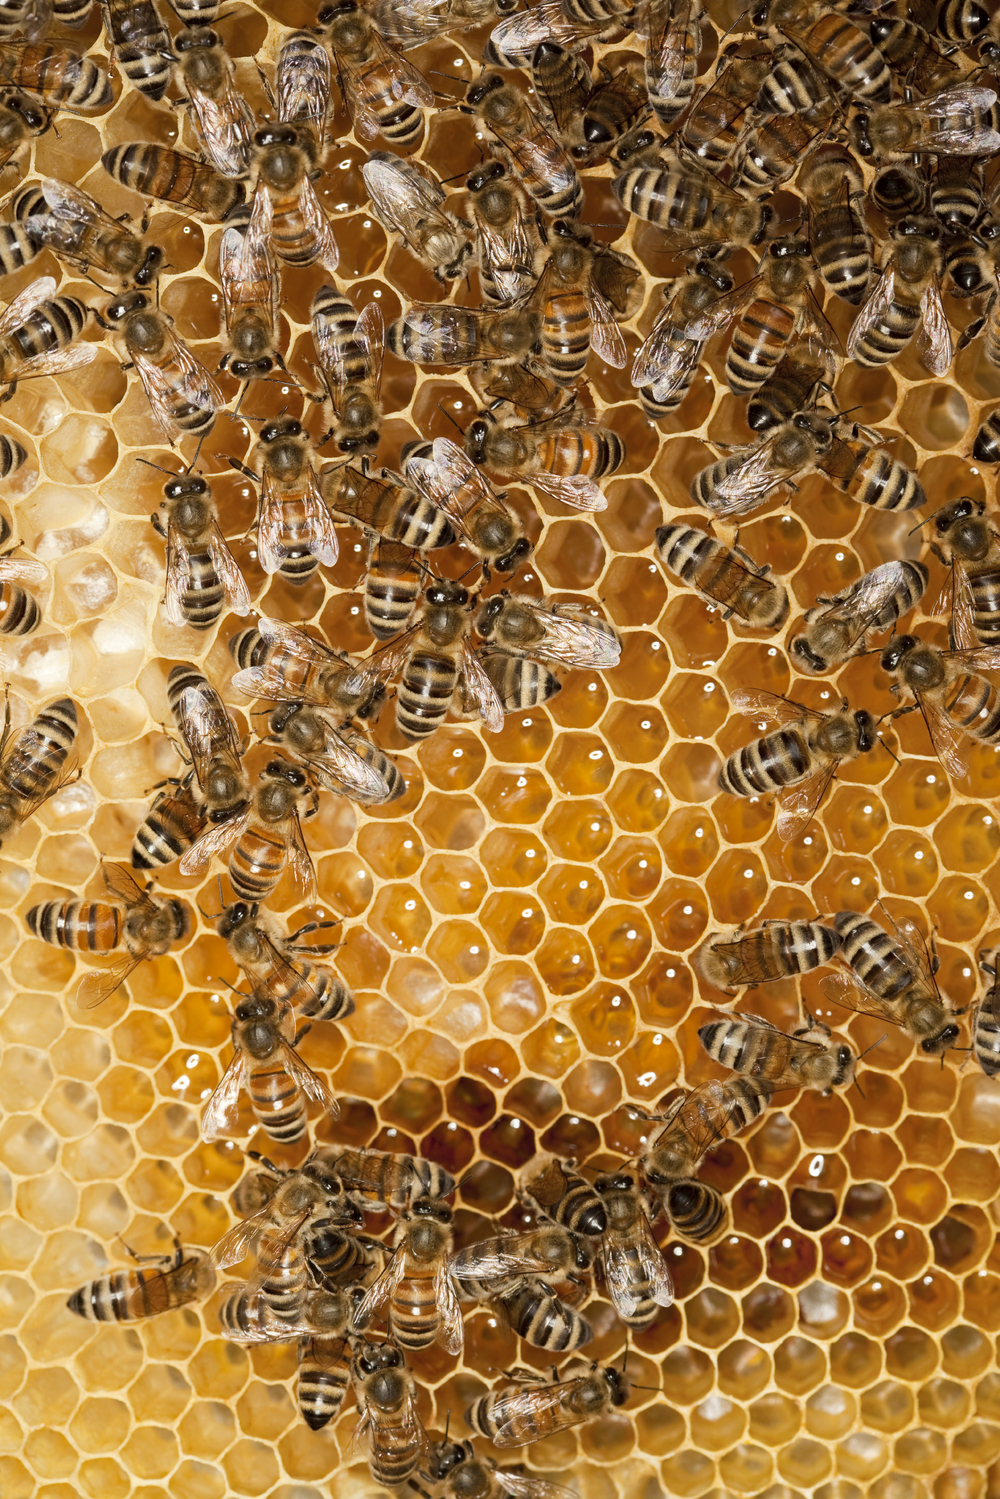 Bees on honeycomb 2.jpg